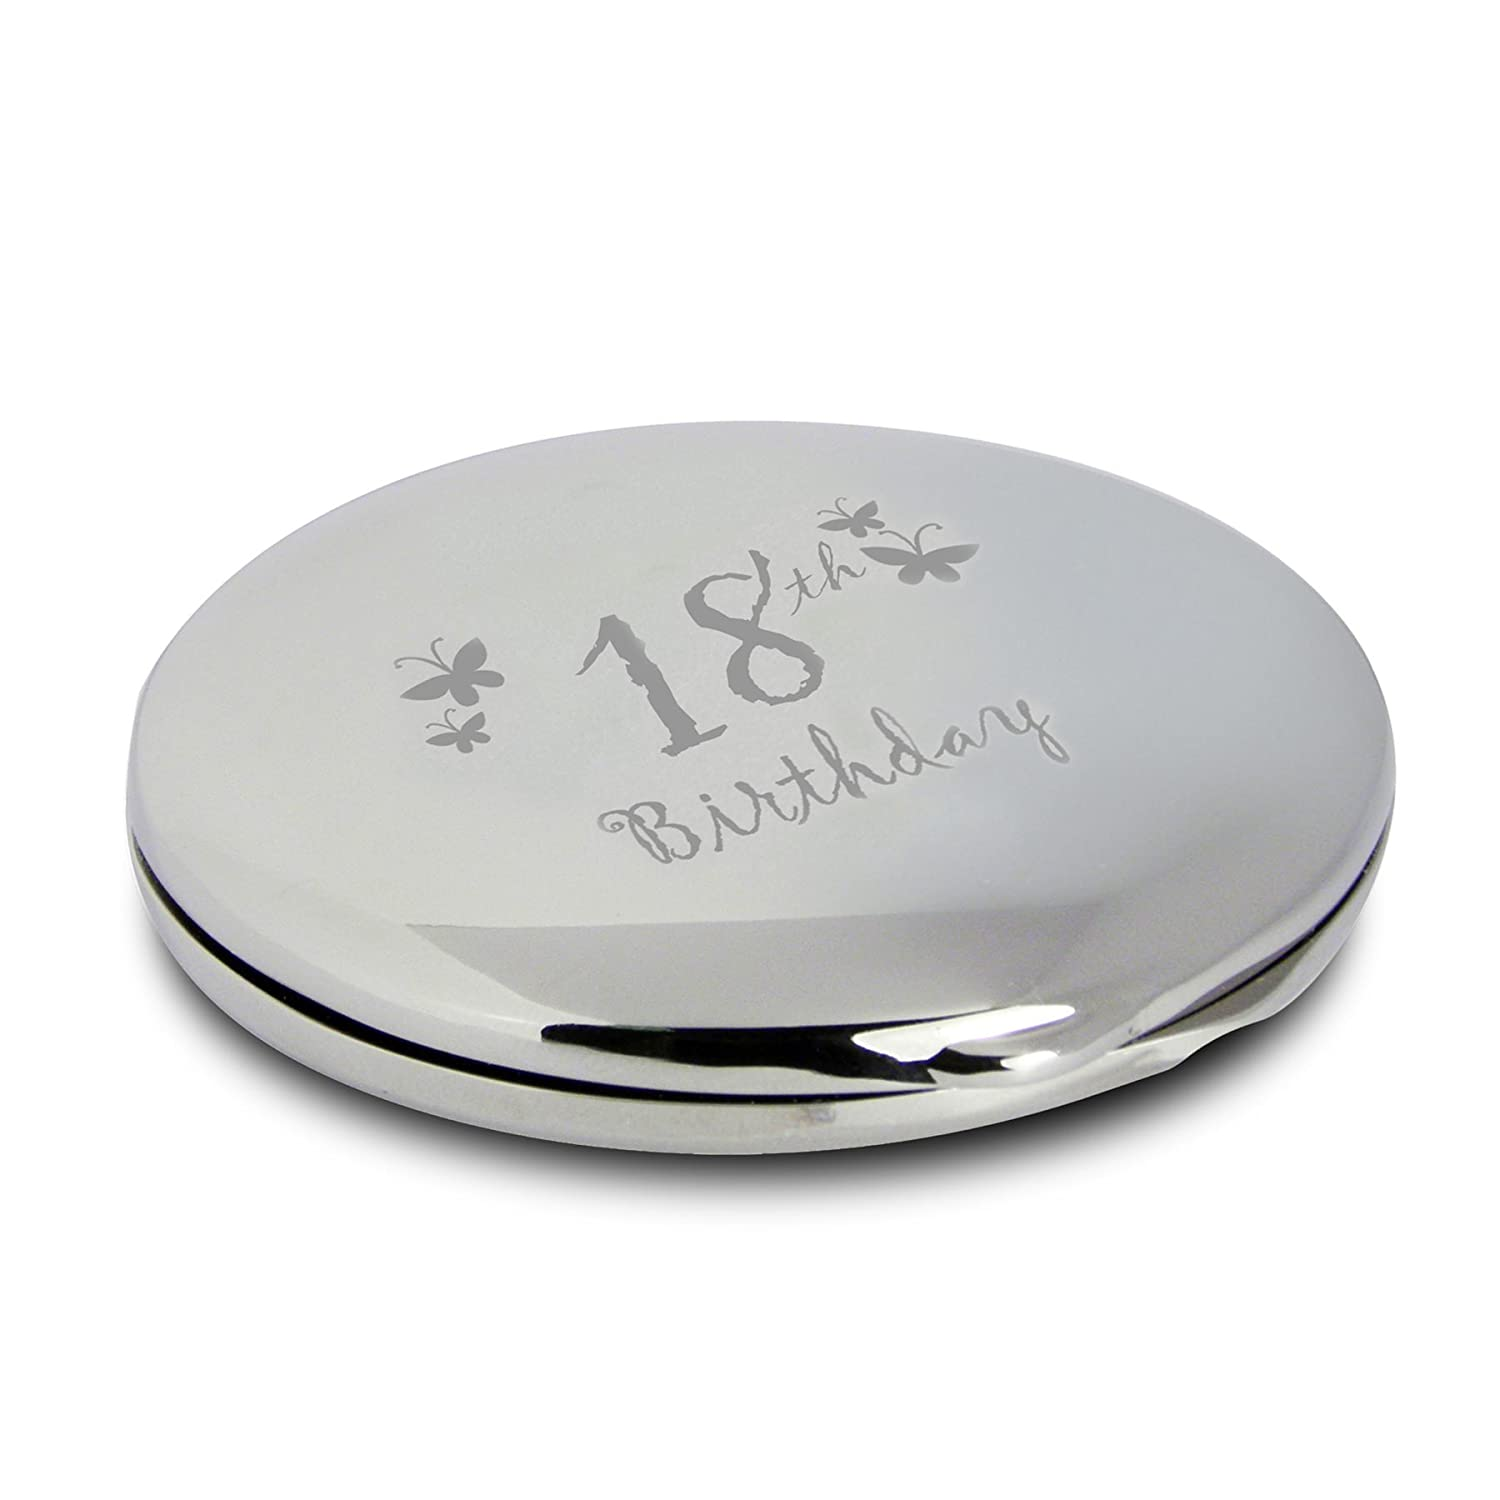 Silver Finish Engraved 18th Birthday Round Compact Mirror with Butterflies Great Gift Idea for Birthday Gifts Friends Presents Gifts for Women